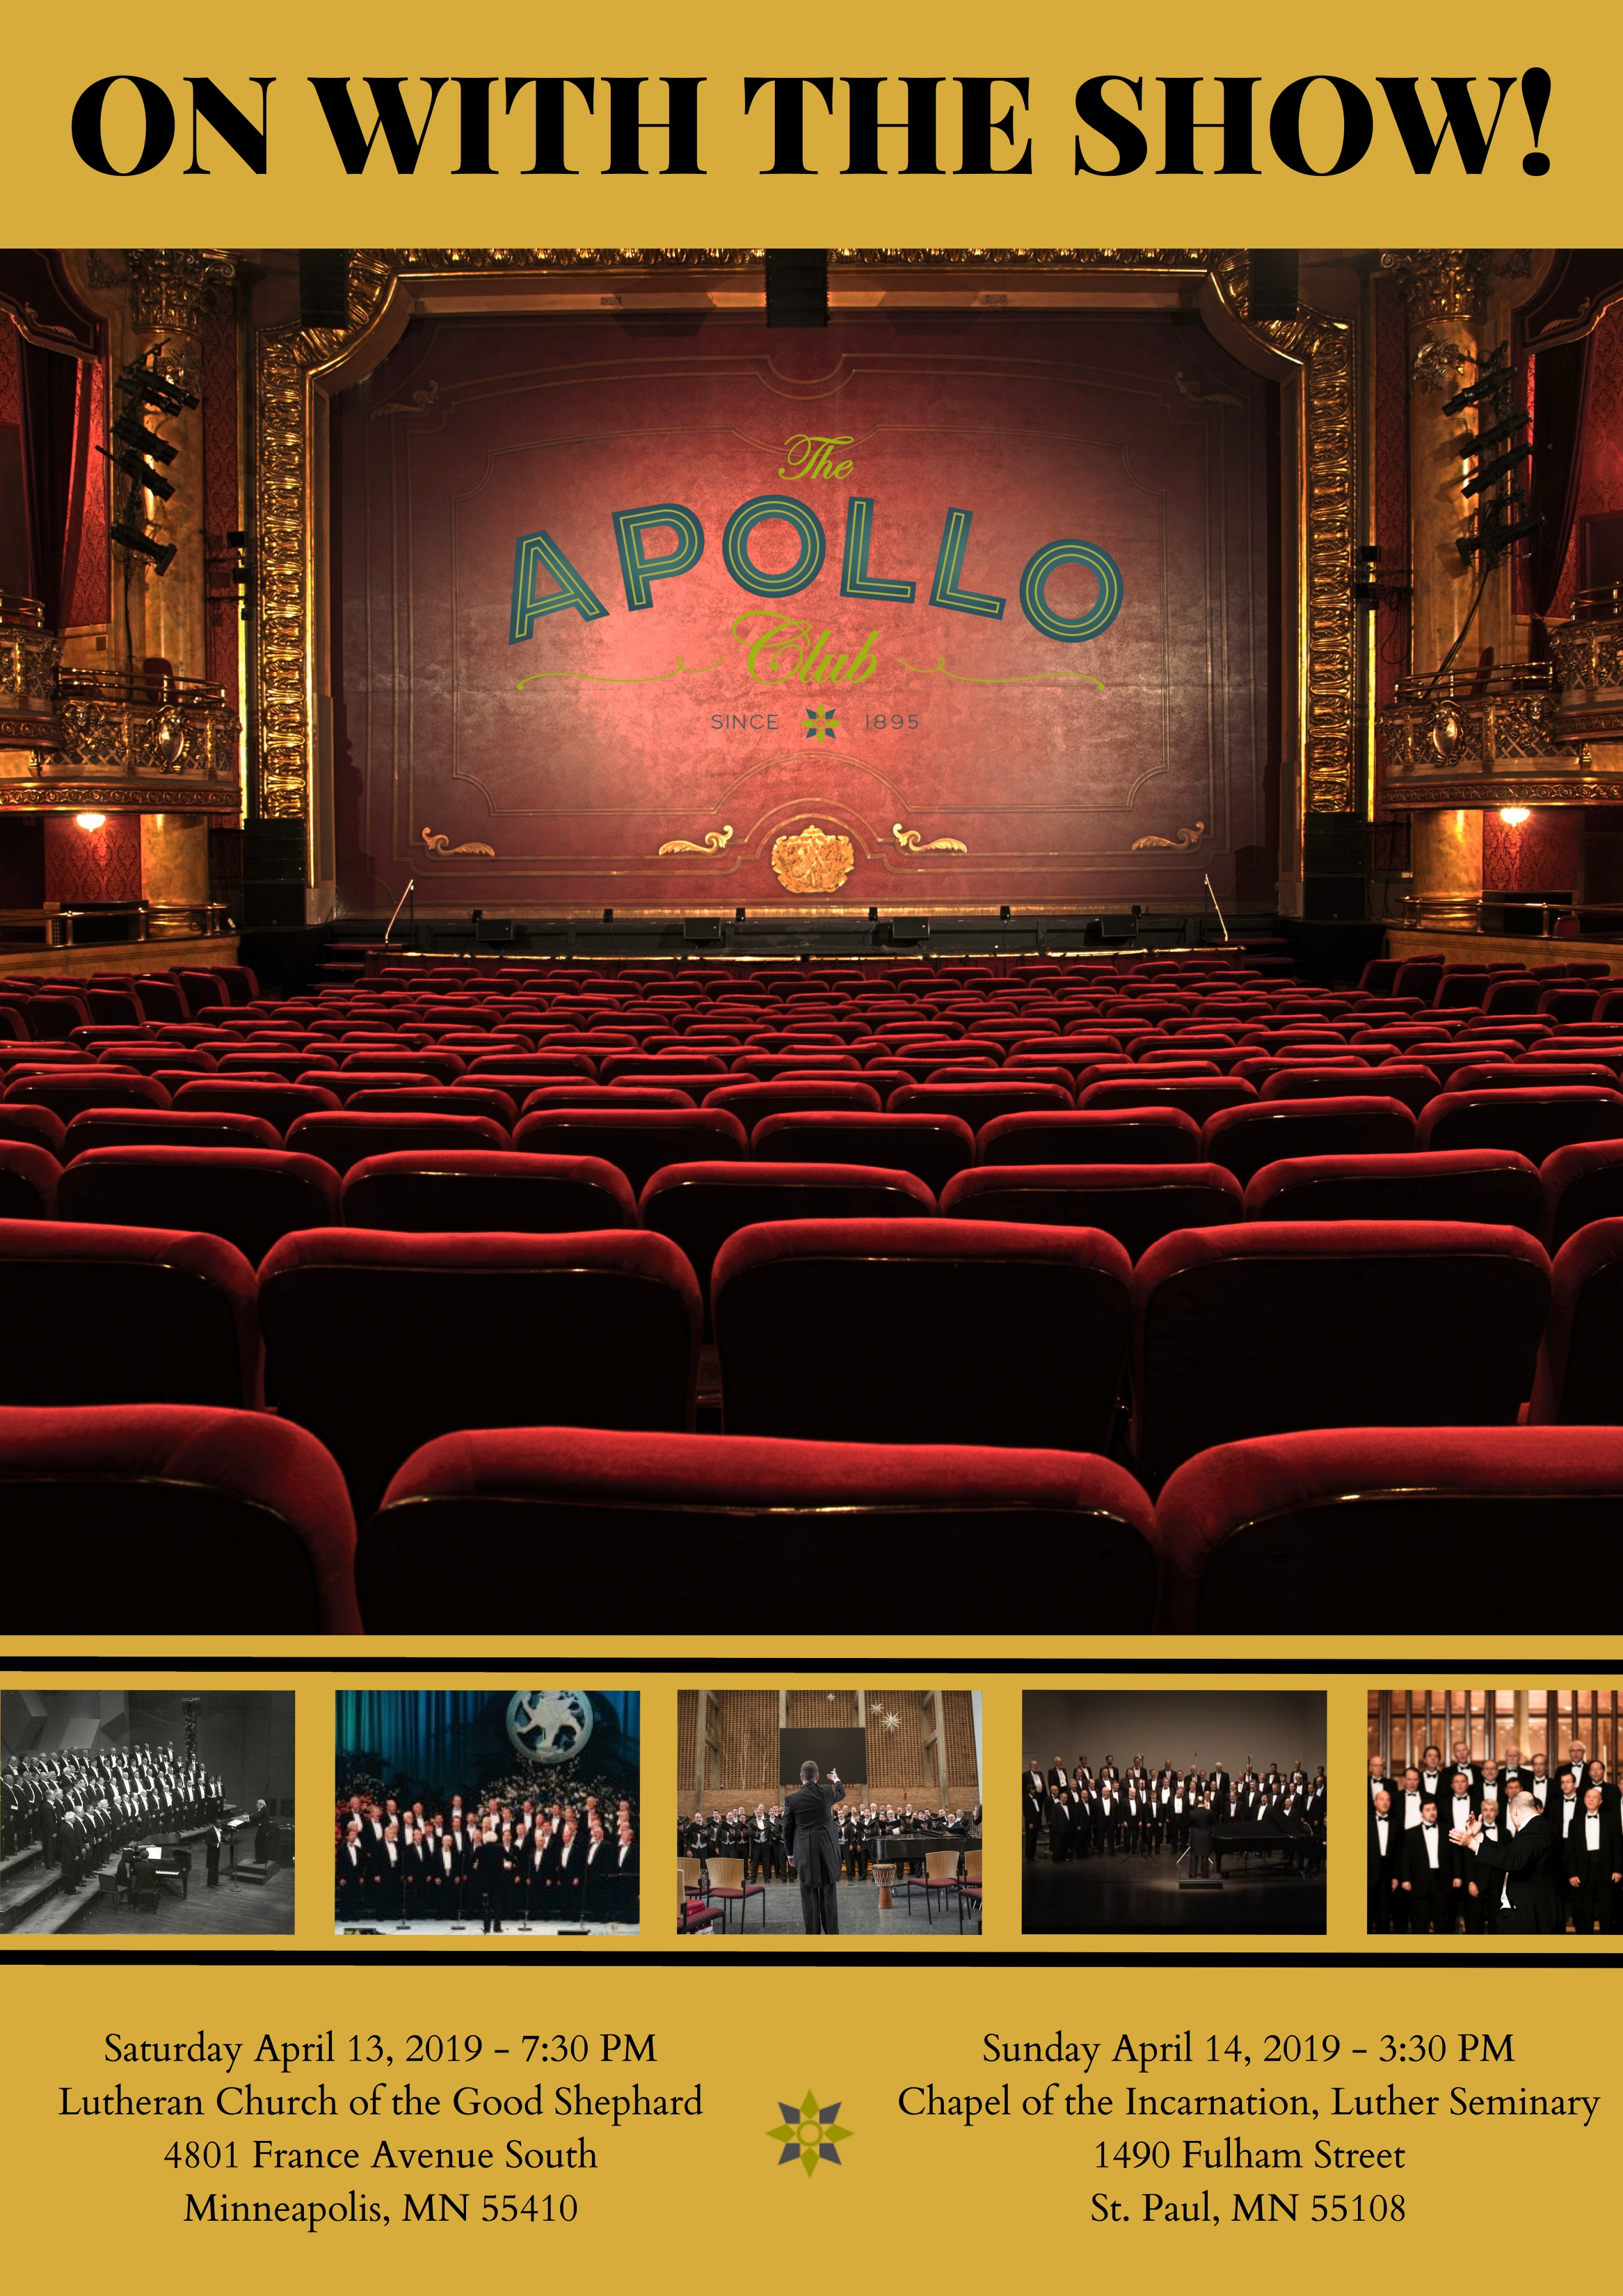 Apollo's Spring 2019 concert performances were on April 13 and 14. - Thanks for coming!Come hear us again at our 2019 Holiday Concerts, December 14th and 15th, 2019!